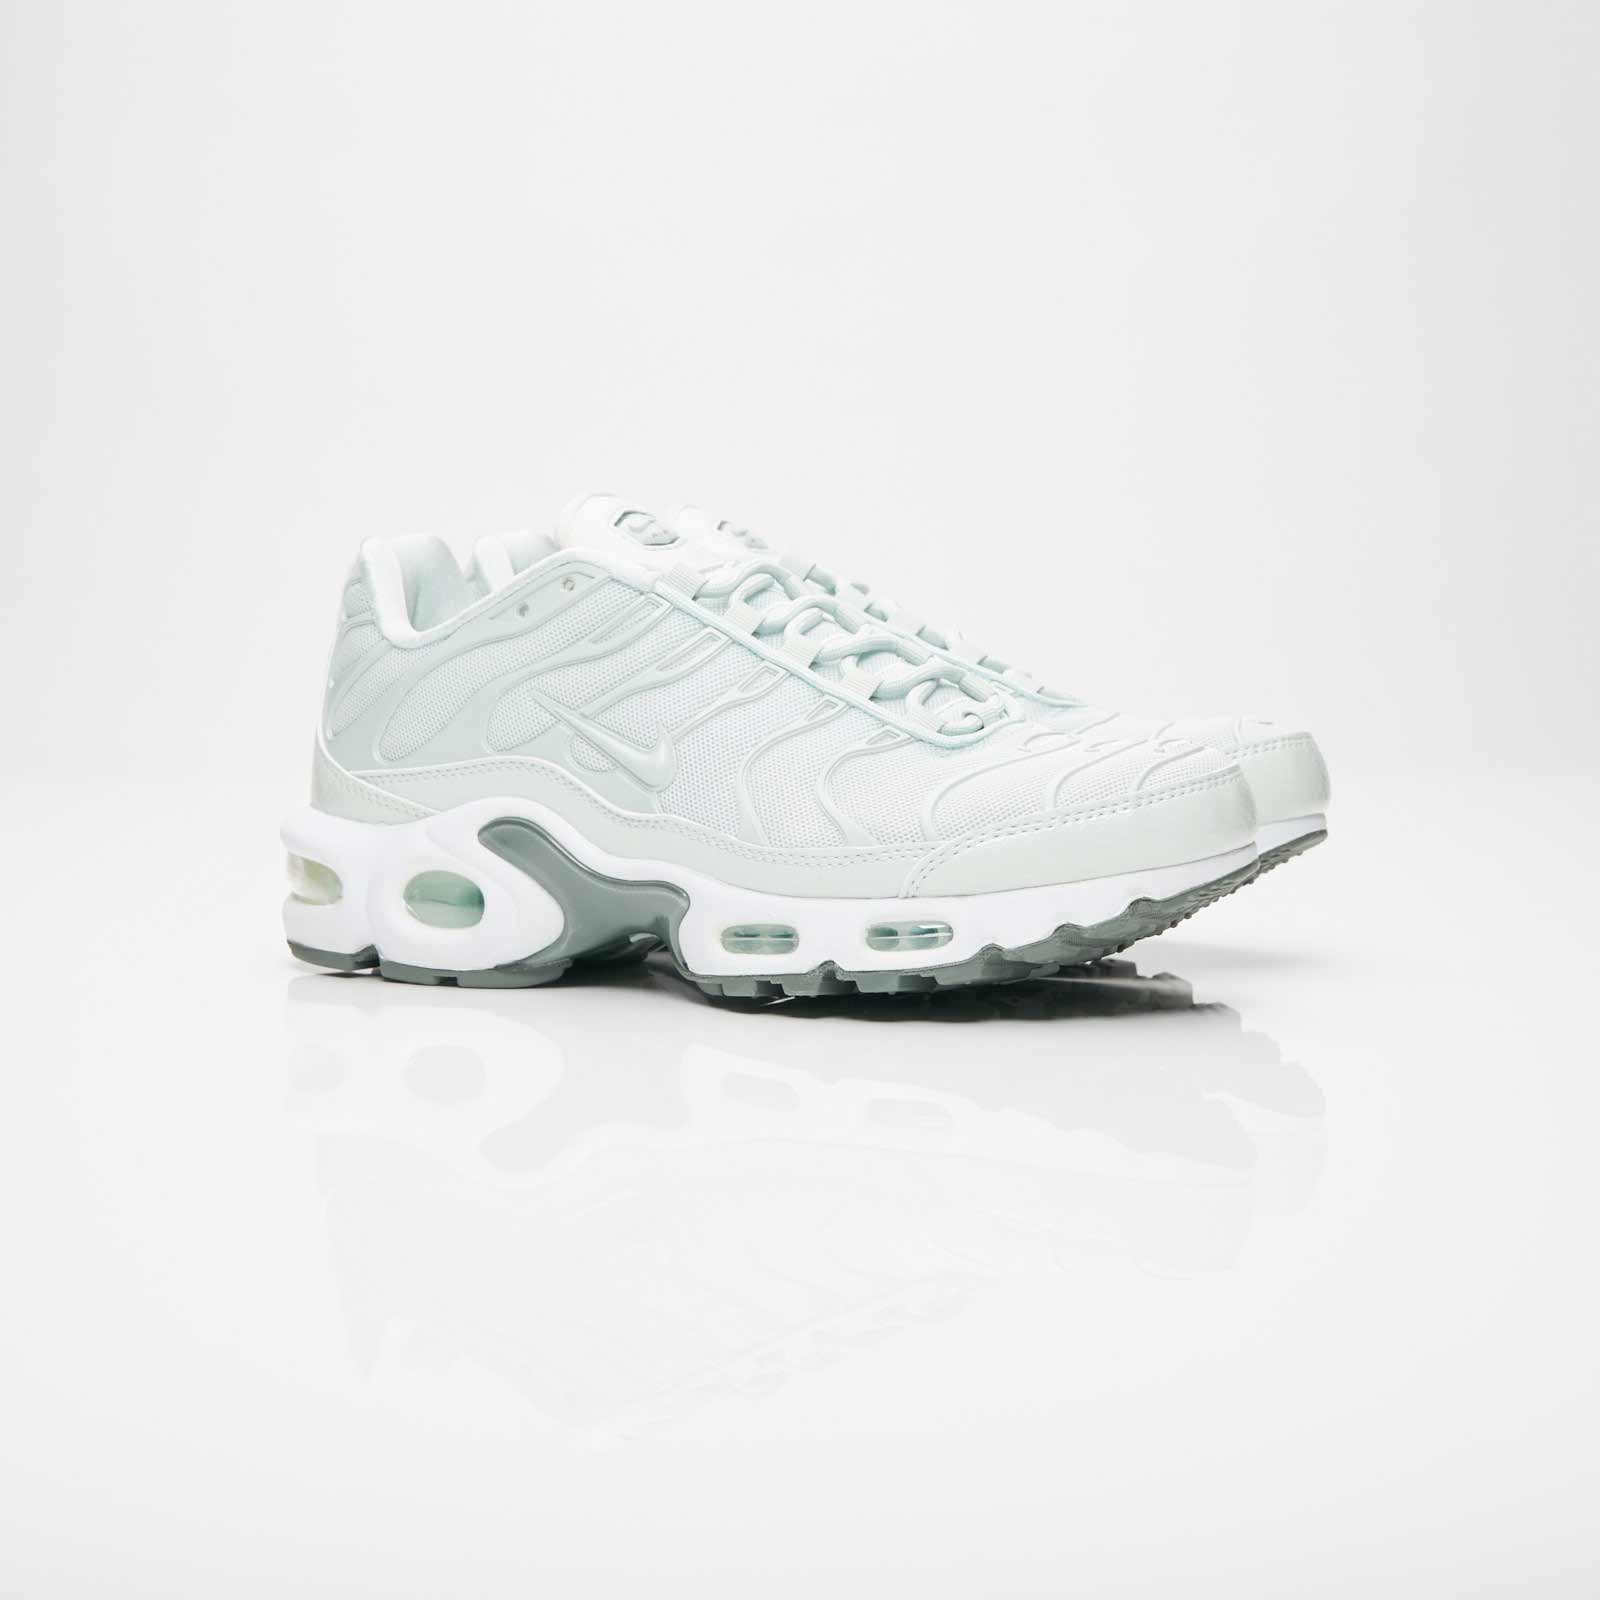 Nike Wmns Air Max Plus SE - 862201-005 - Sneakersnstuff I ...